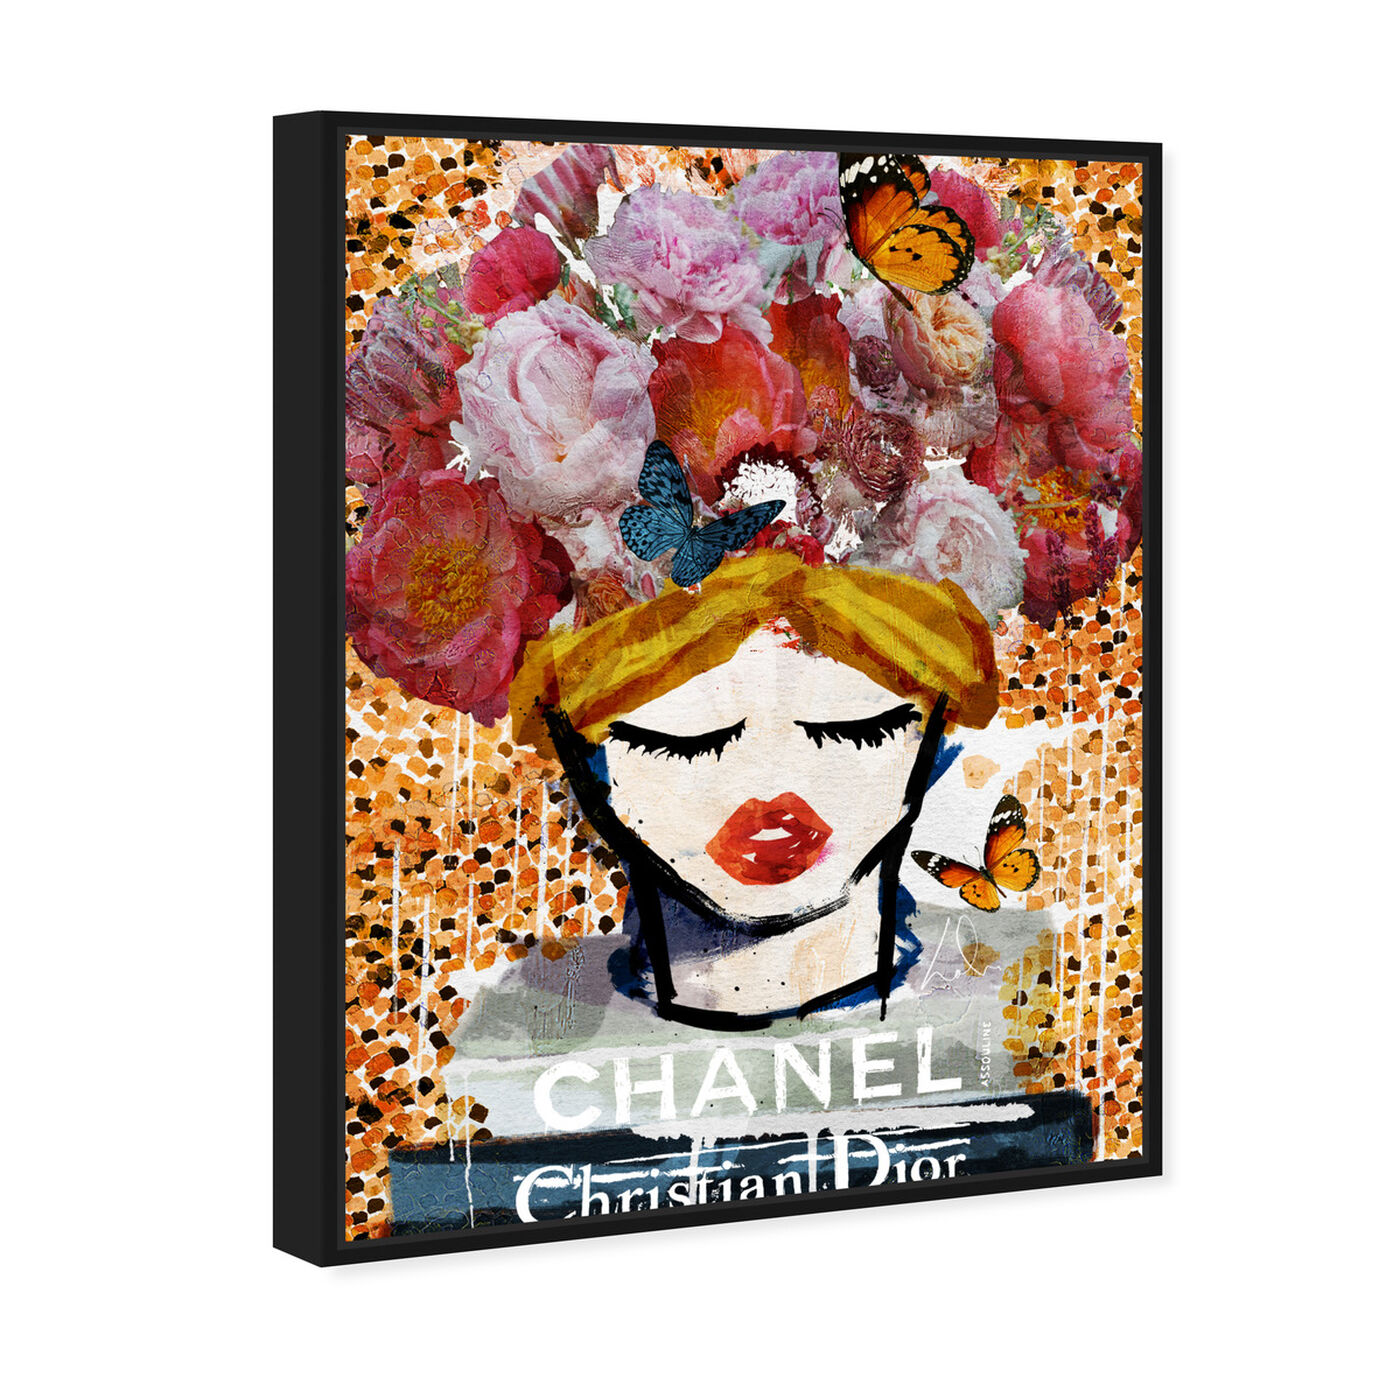 Angled view of Sicilian Vase featuring fashion and glam and books art.